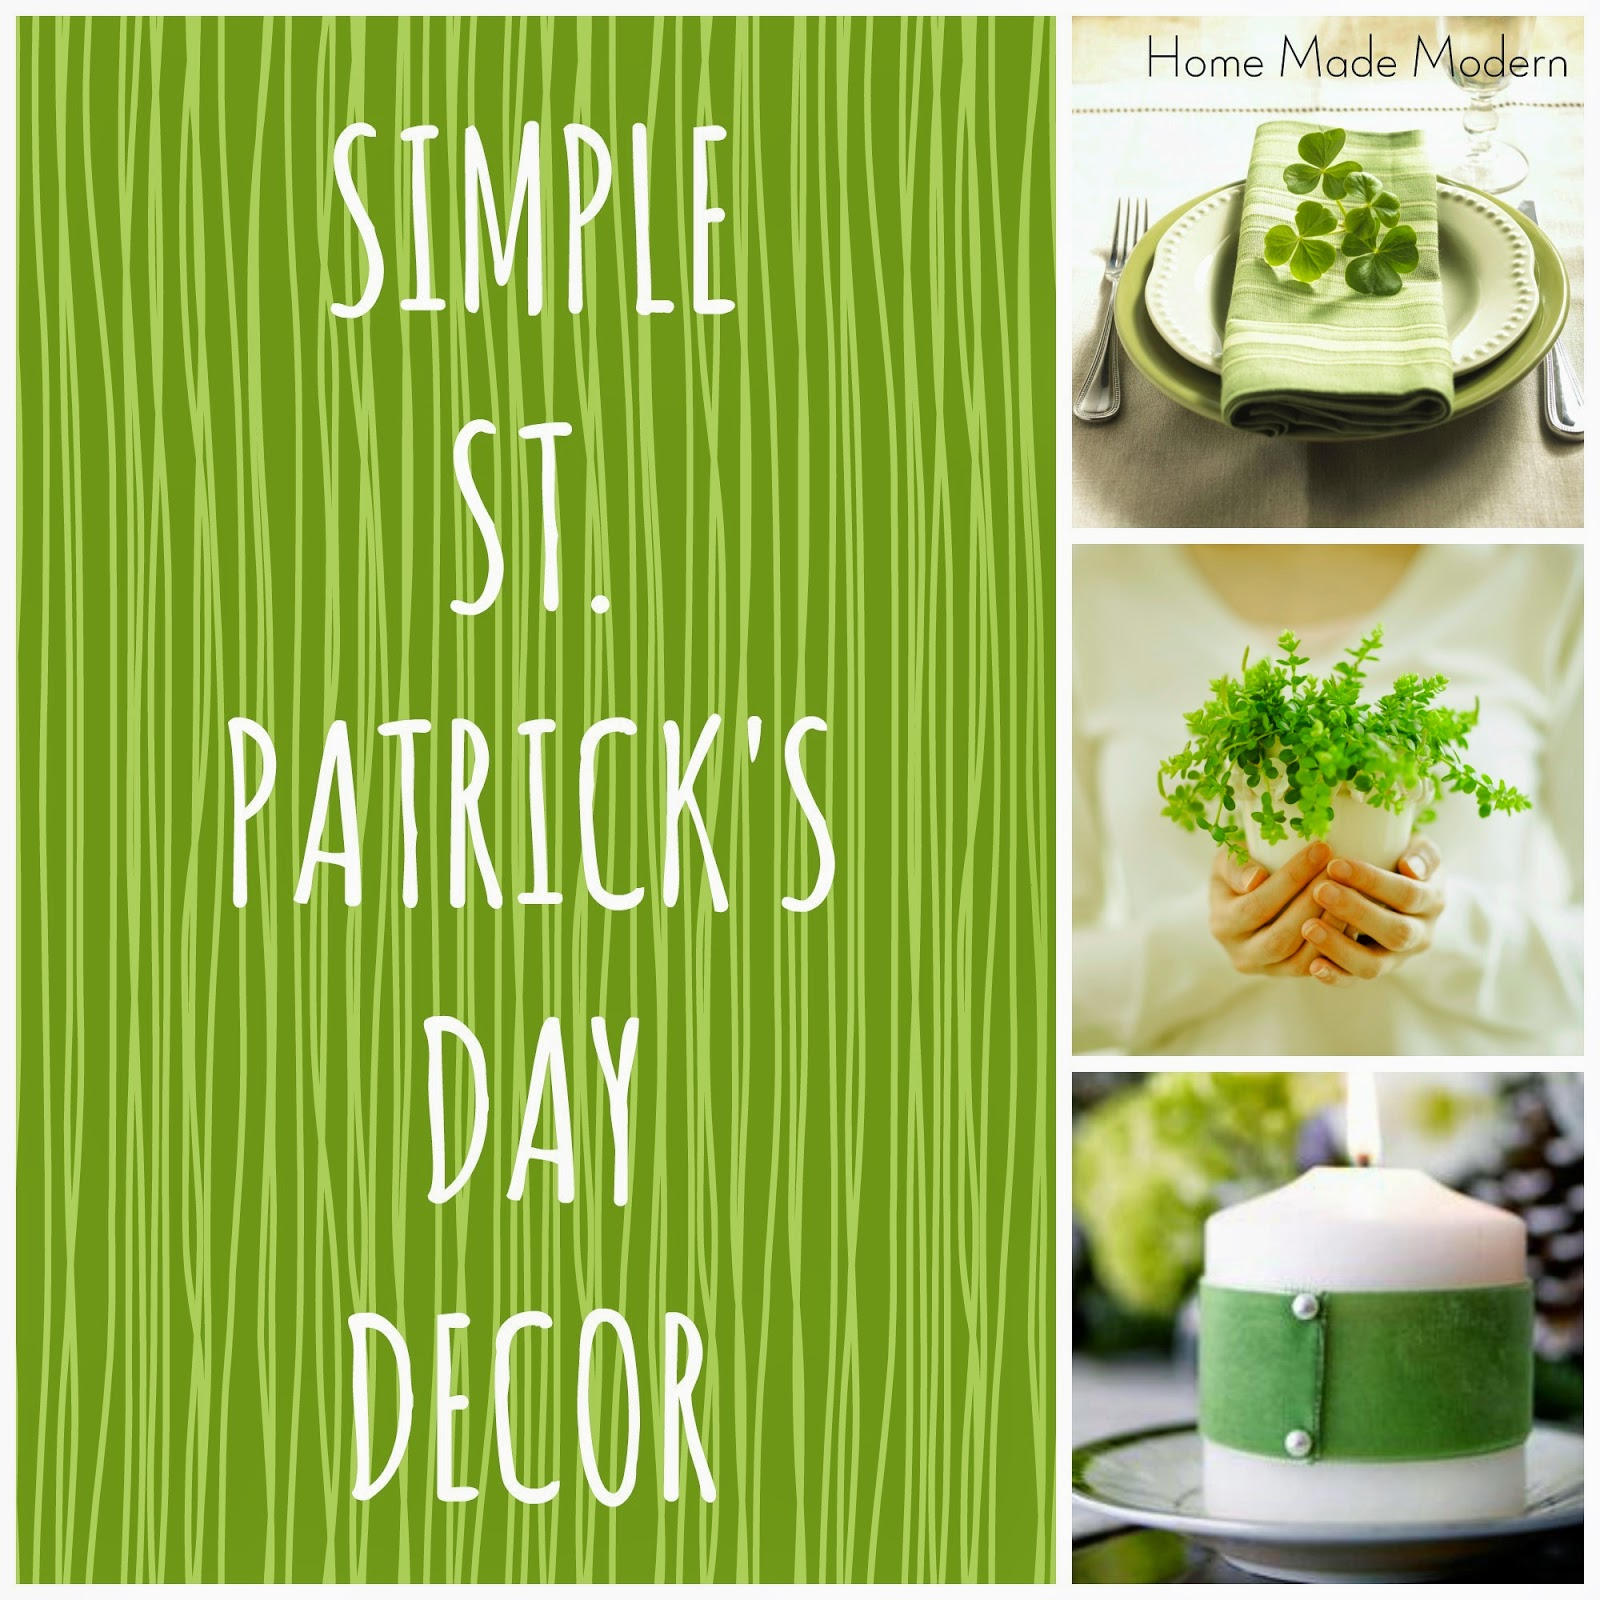 simple st. patrick's day decor - home made modern